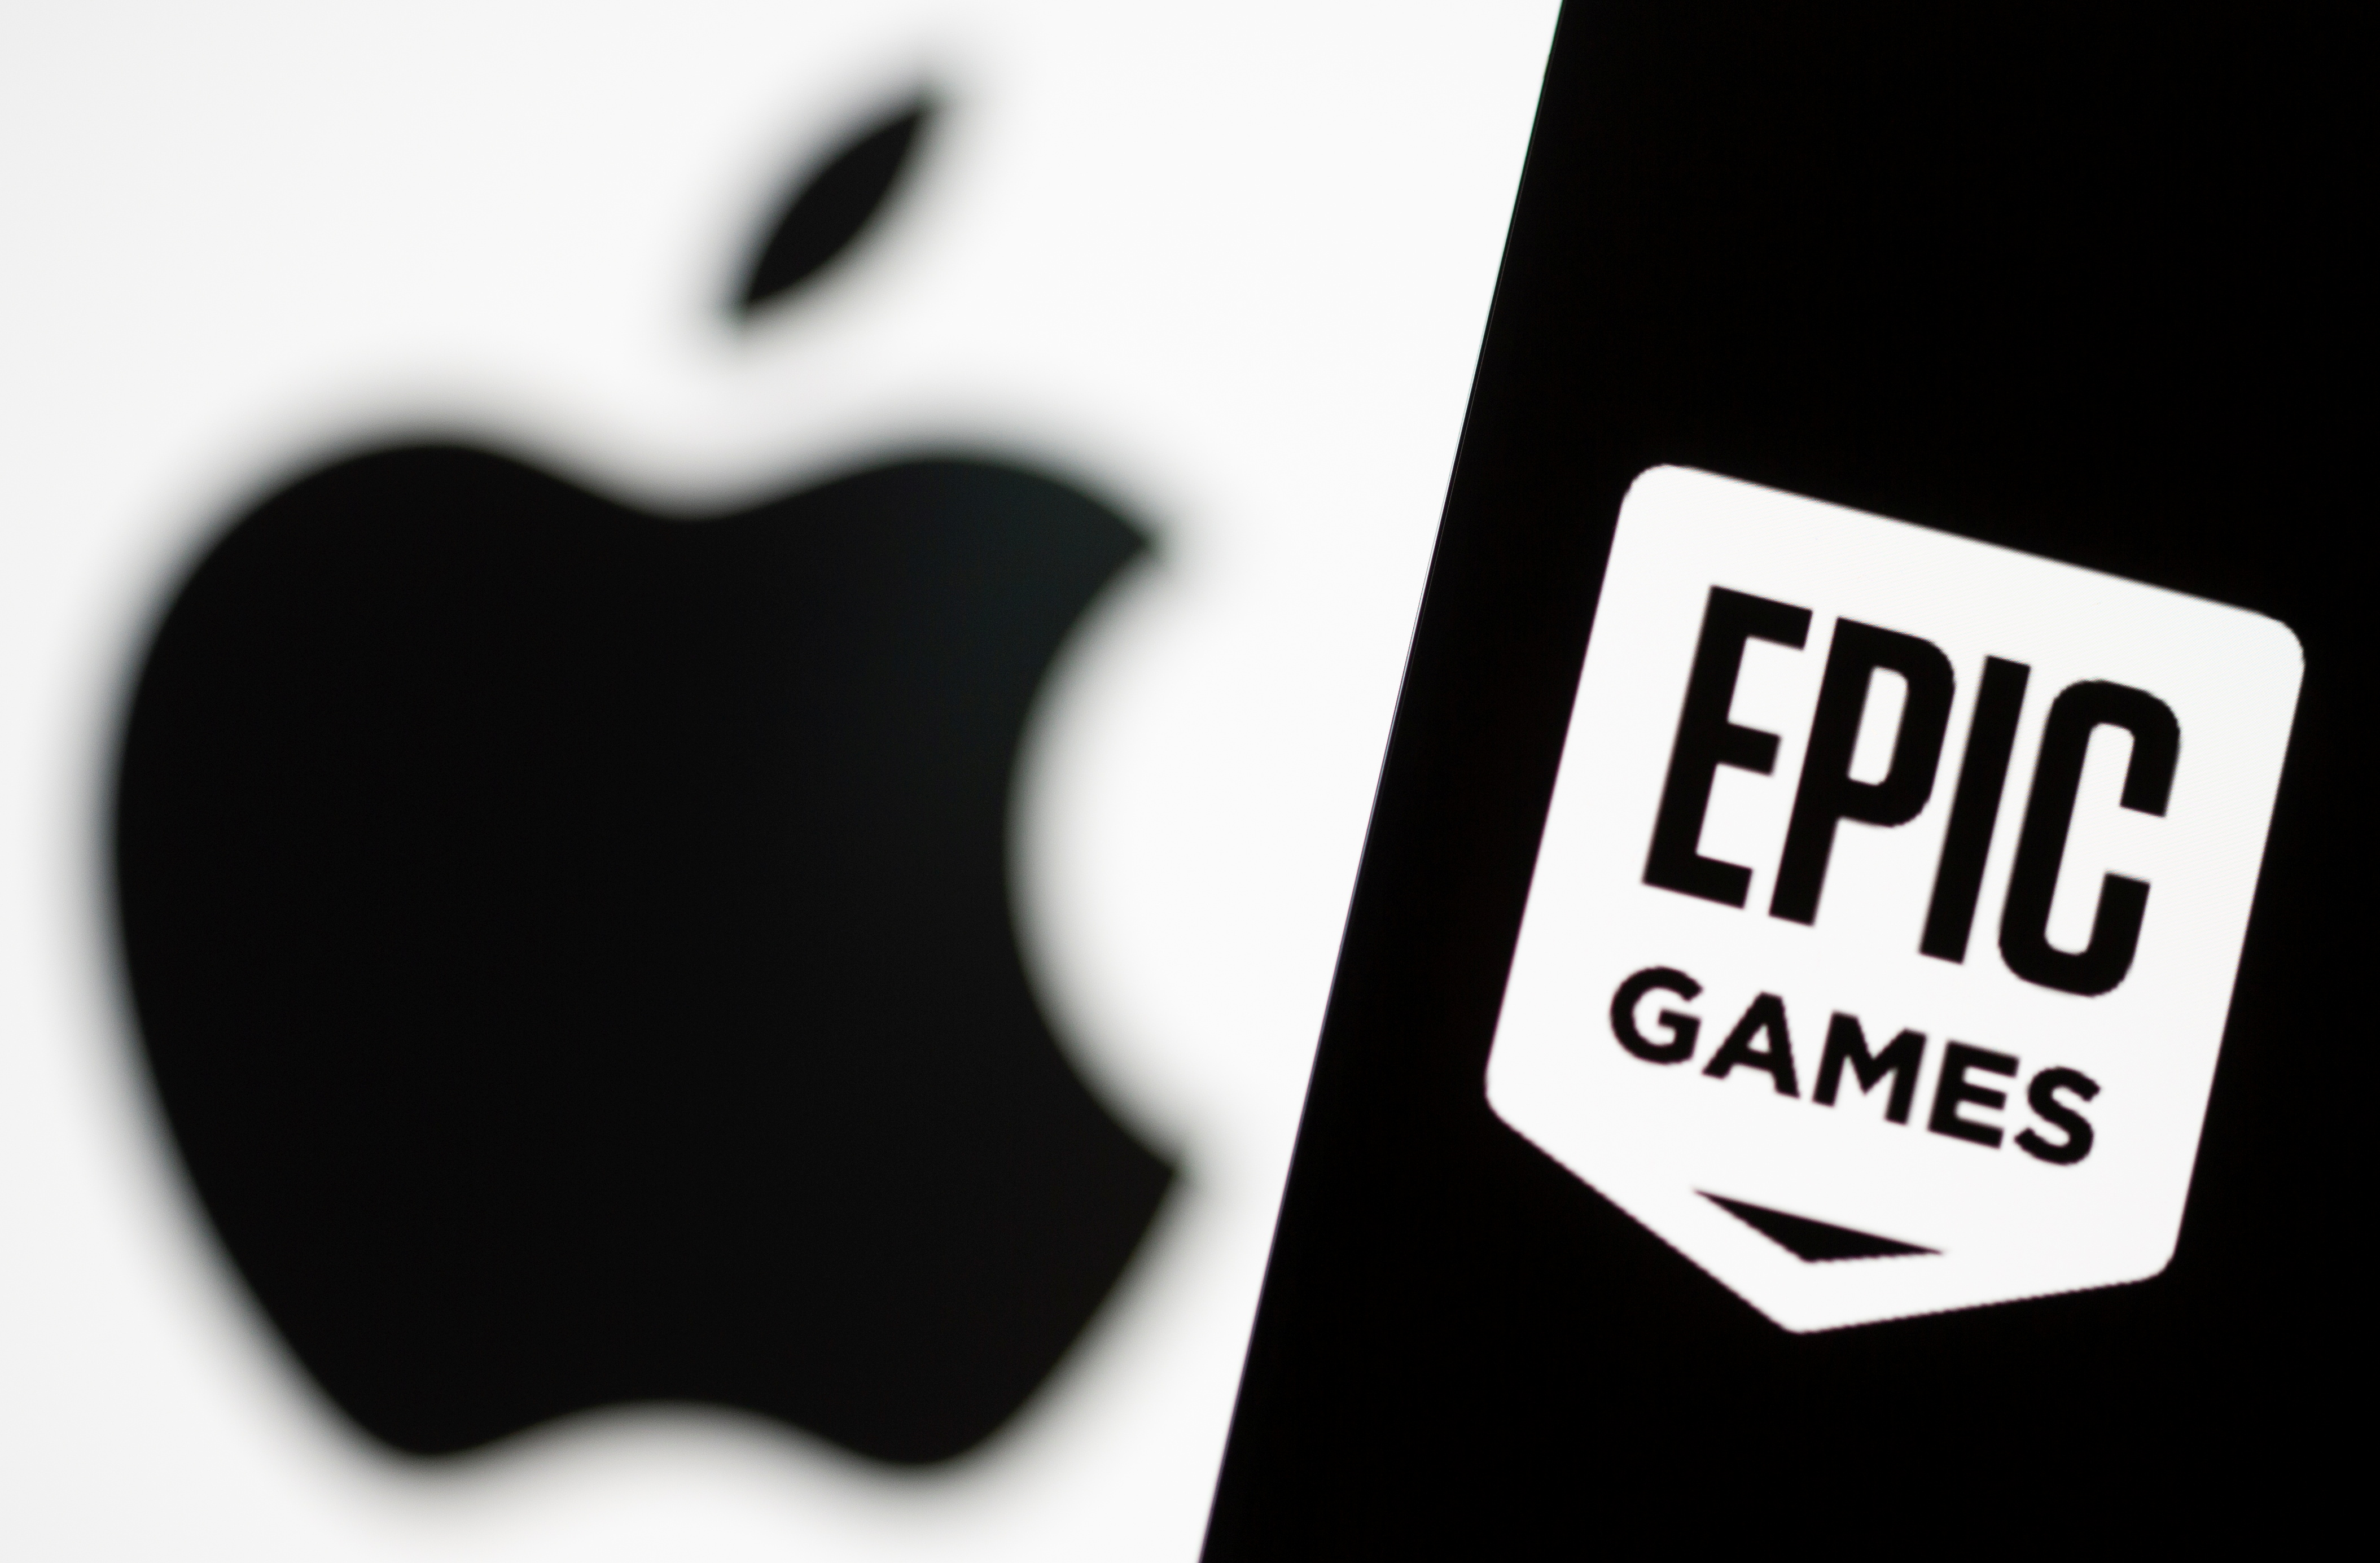 Smartphone with Epic Games logo is seen in front of Apple logo in this illustration taken, May 2, 2021. REUTERS/Dado Ruvic/Illustration